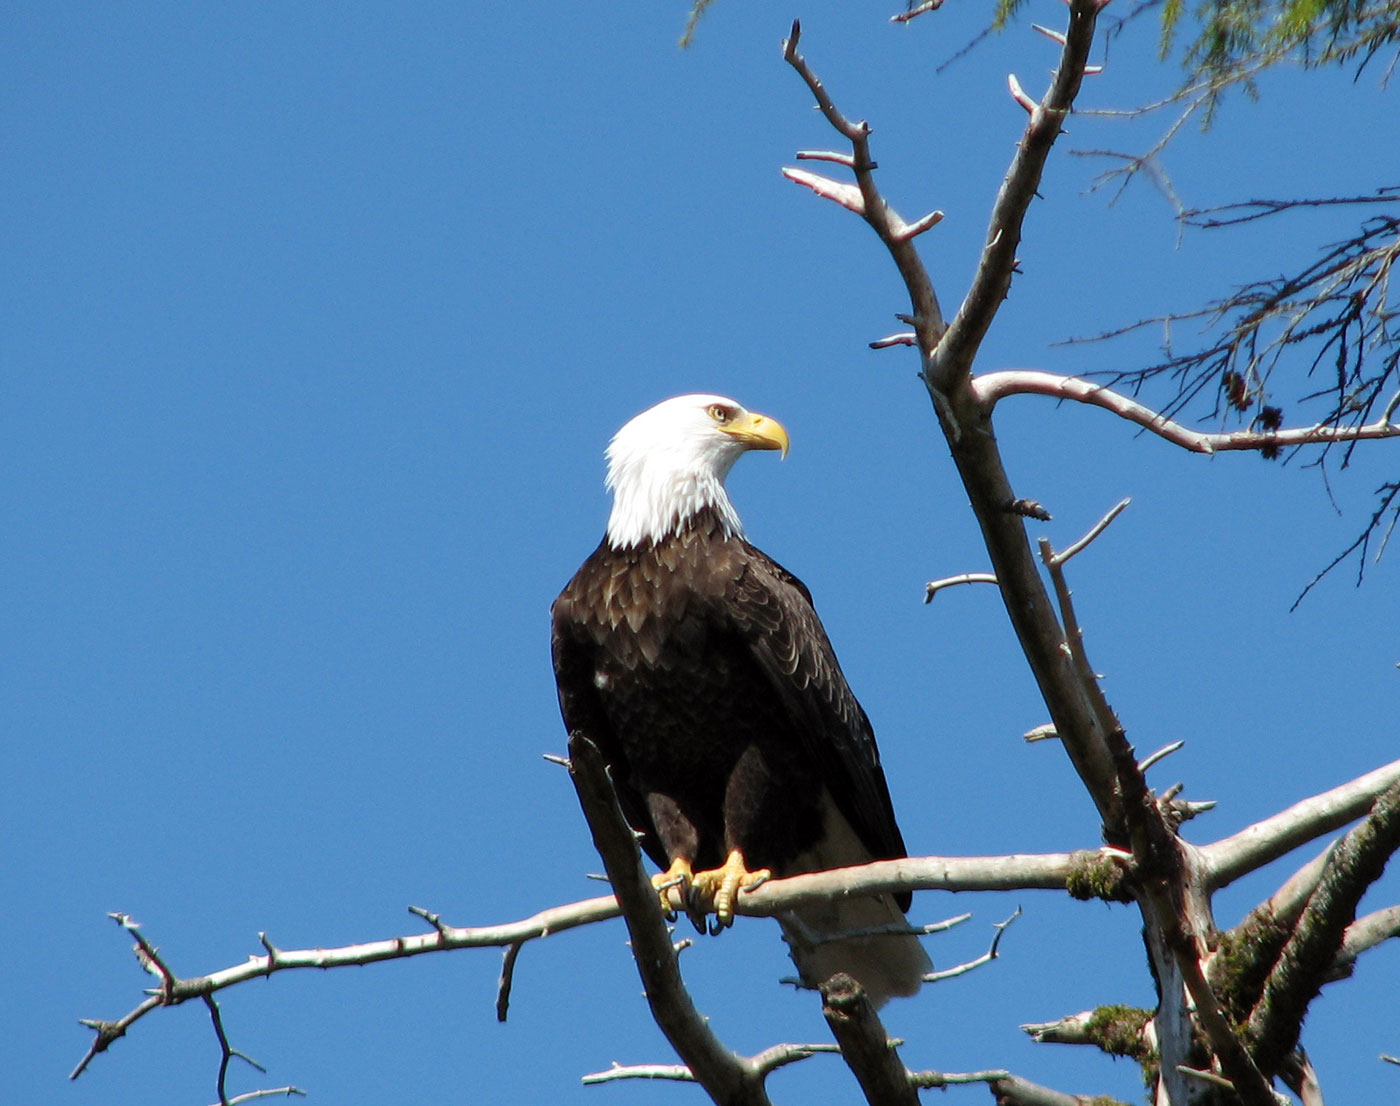 Bald eagles stand watch